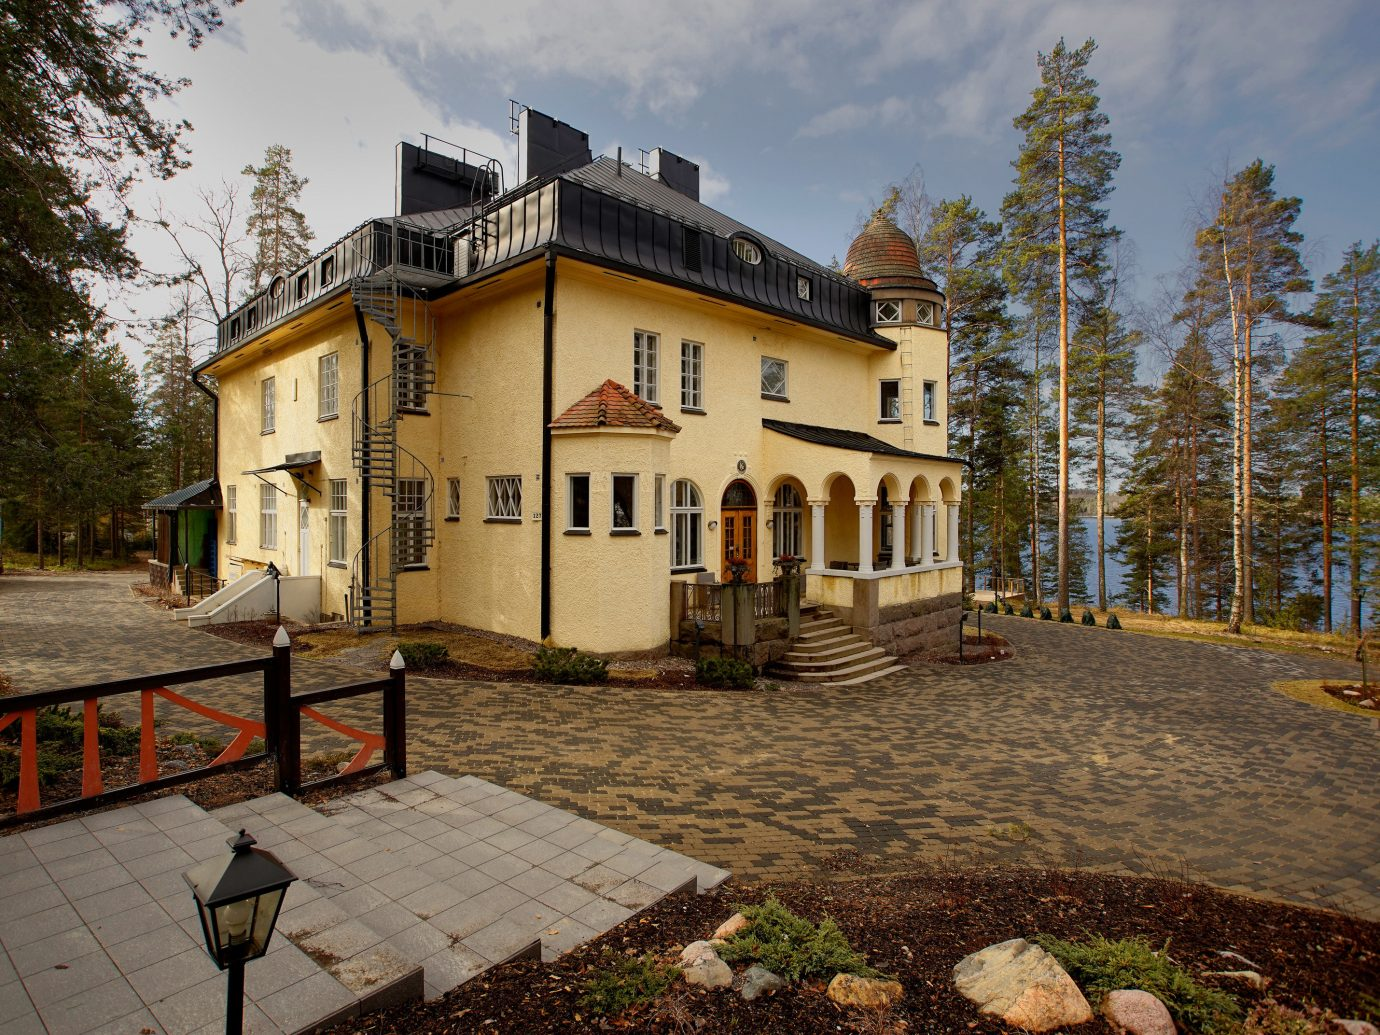 Denmark Finland Hotels Landmarks Luxury Travel Sweden outdoor tree ground property home estate house real estate cottage Villa building sky mansion facade window farmhouse stone walkway